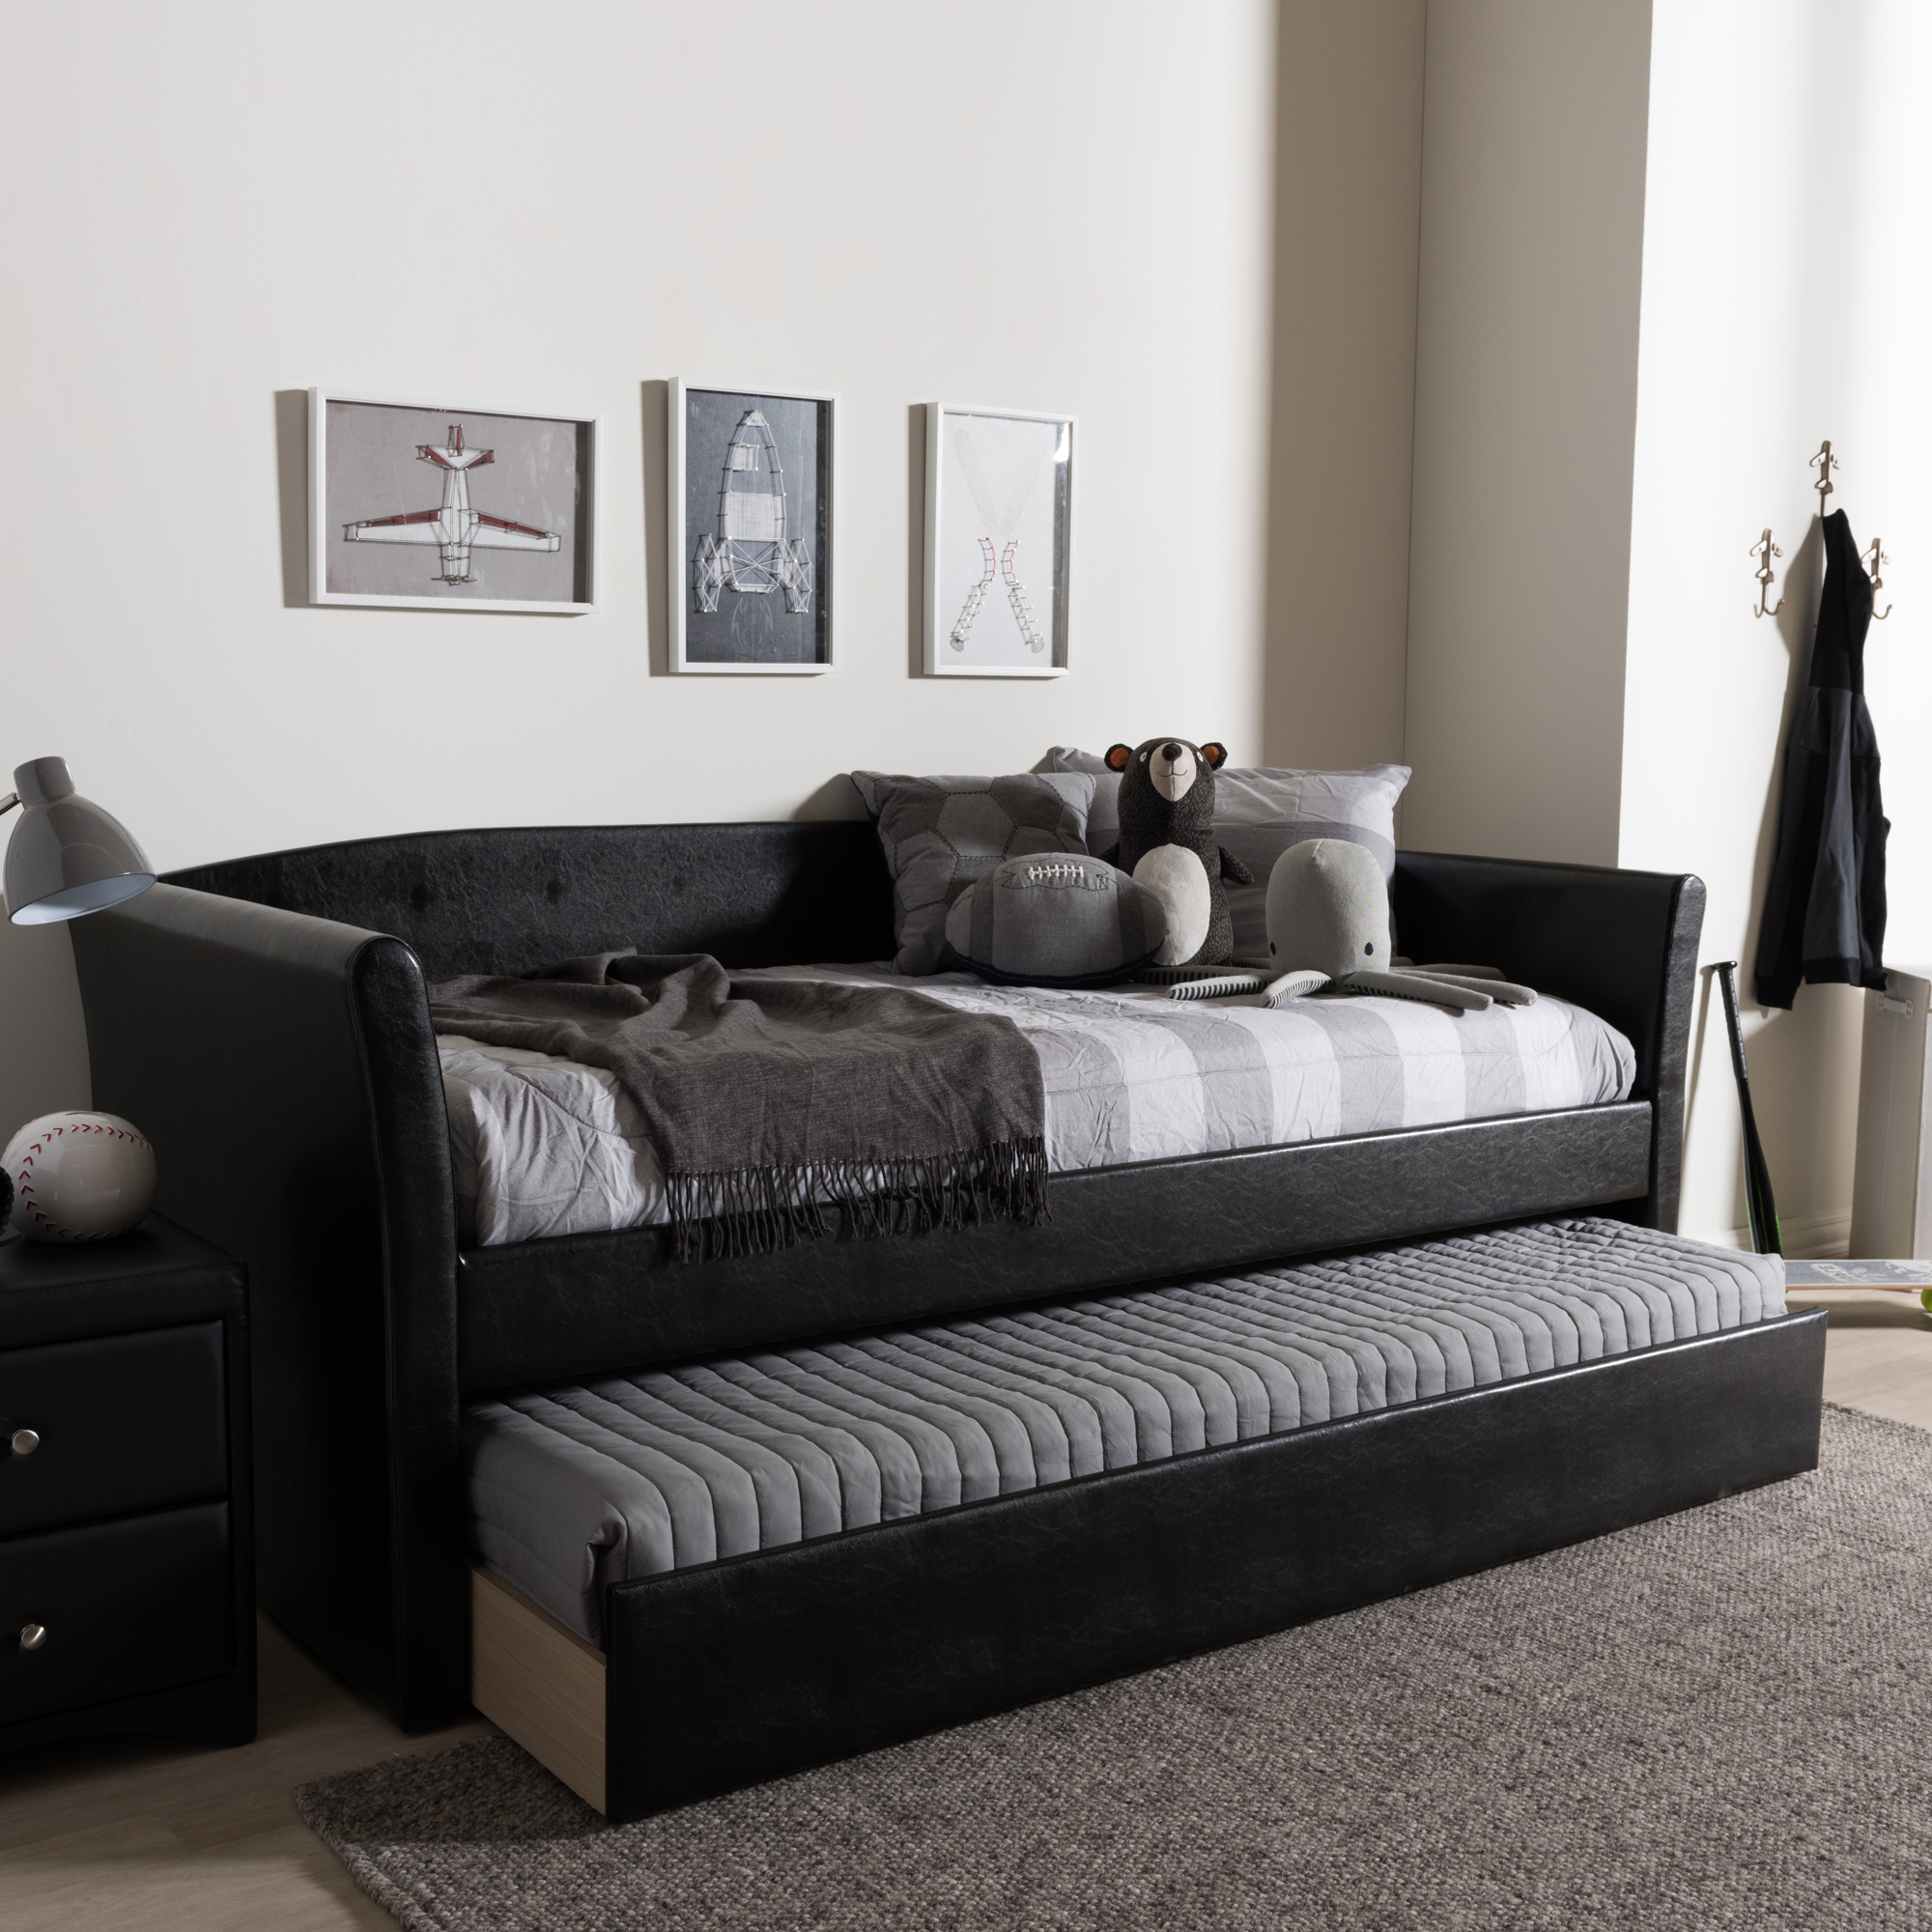 Couch Trundle Bed Space Saving Guest Beds With Storage Trundle Beds Stunning Ikea Trundle Bed